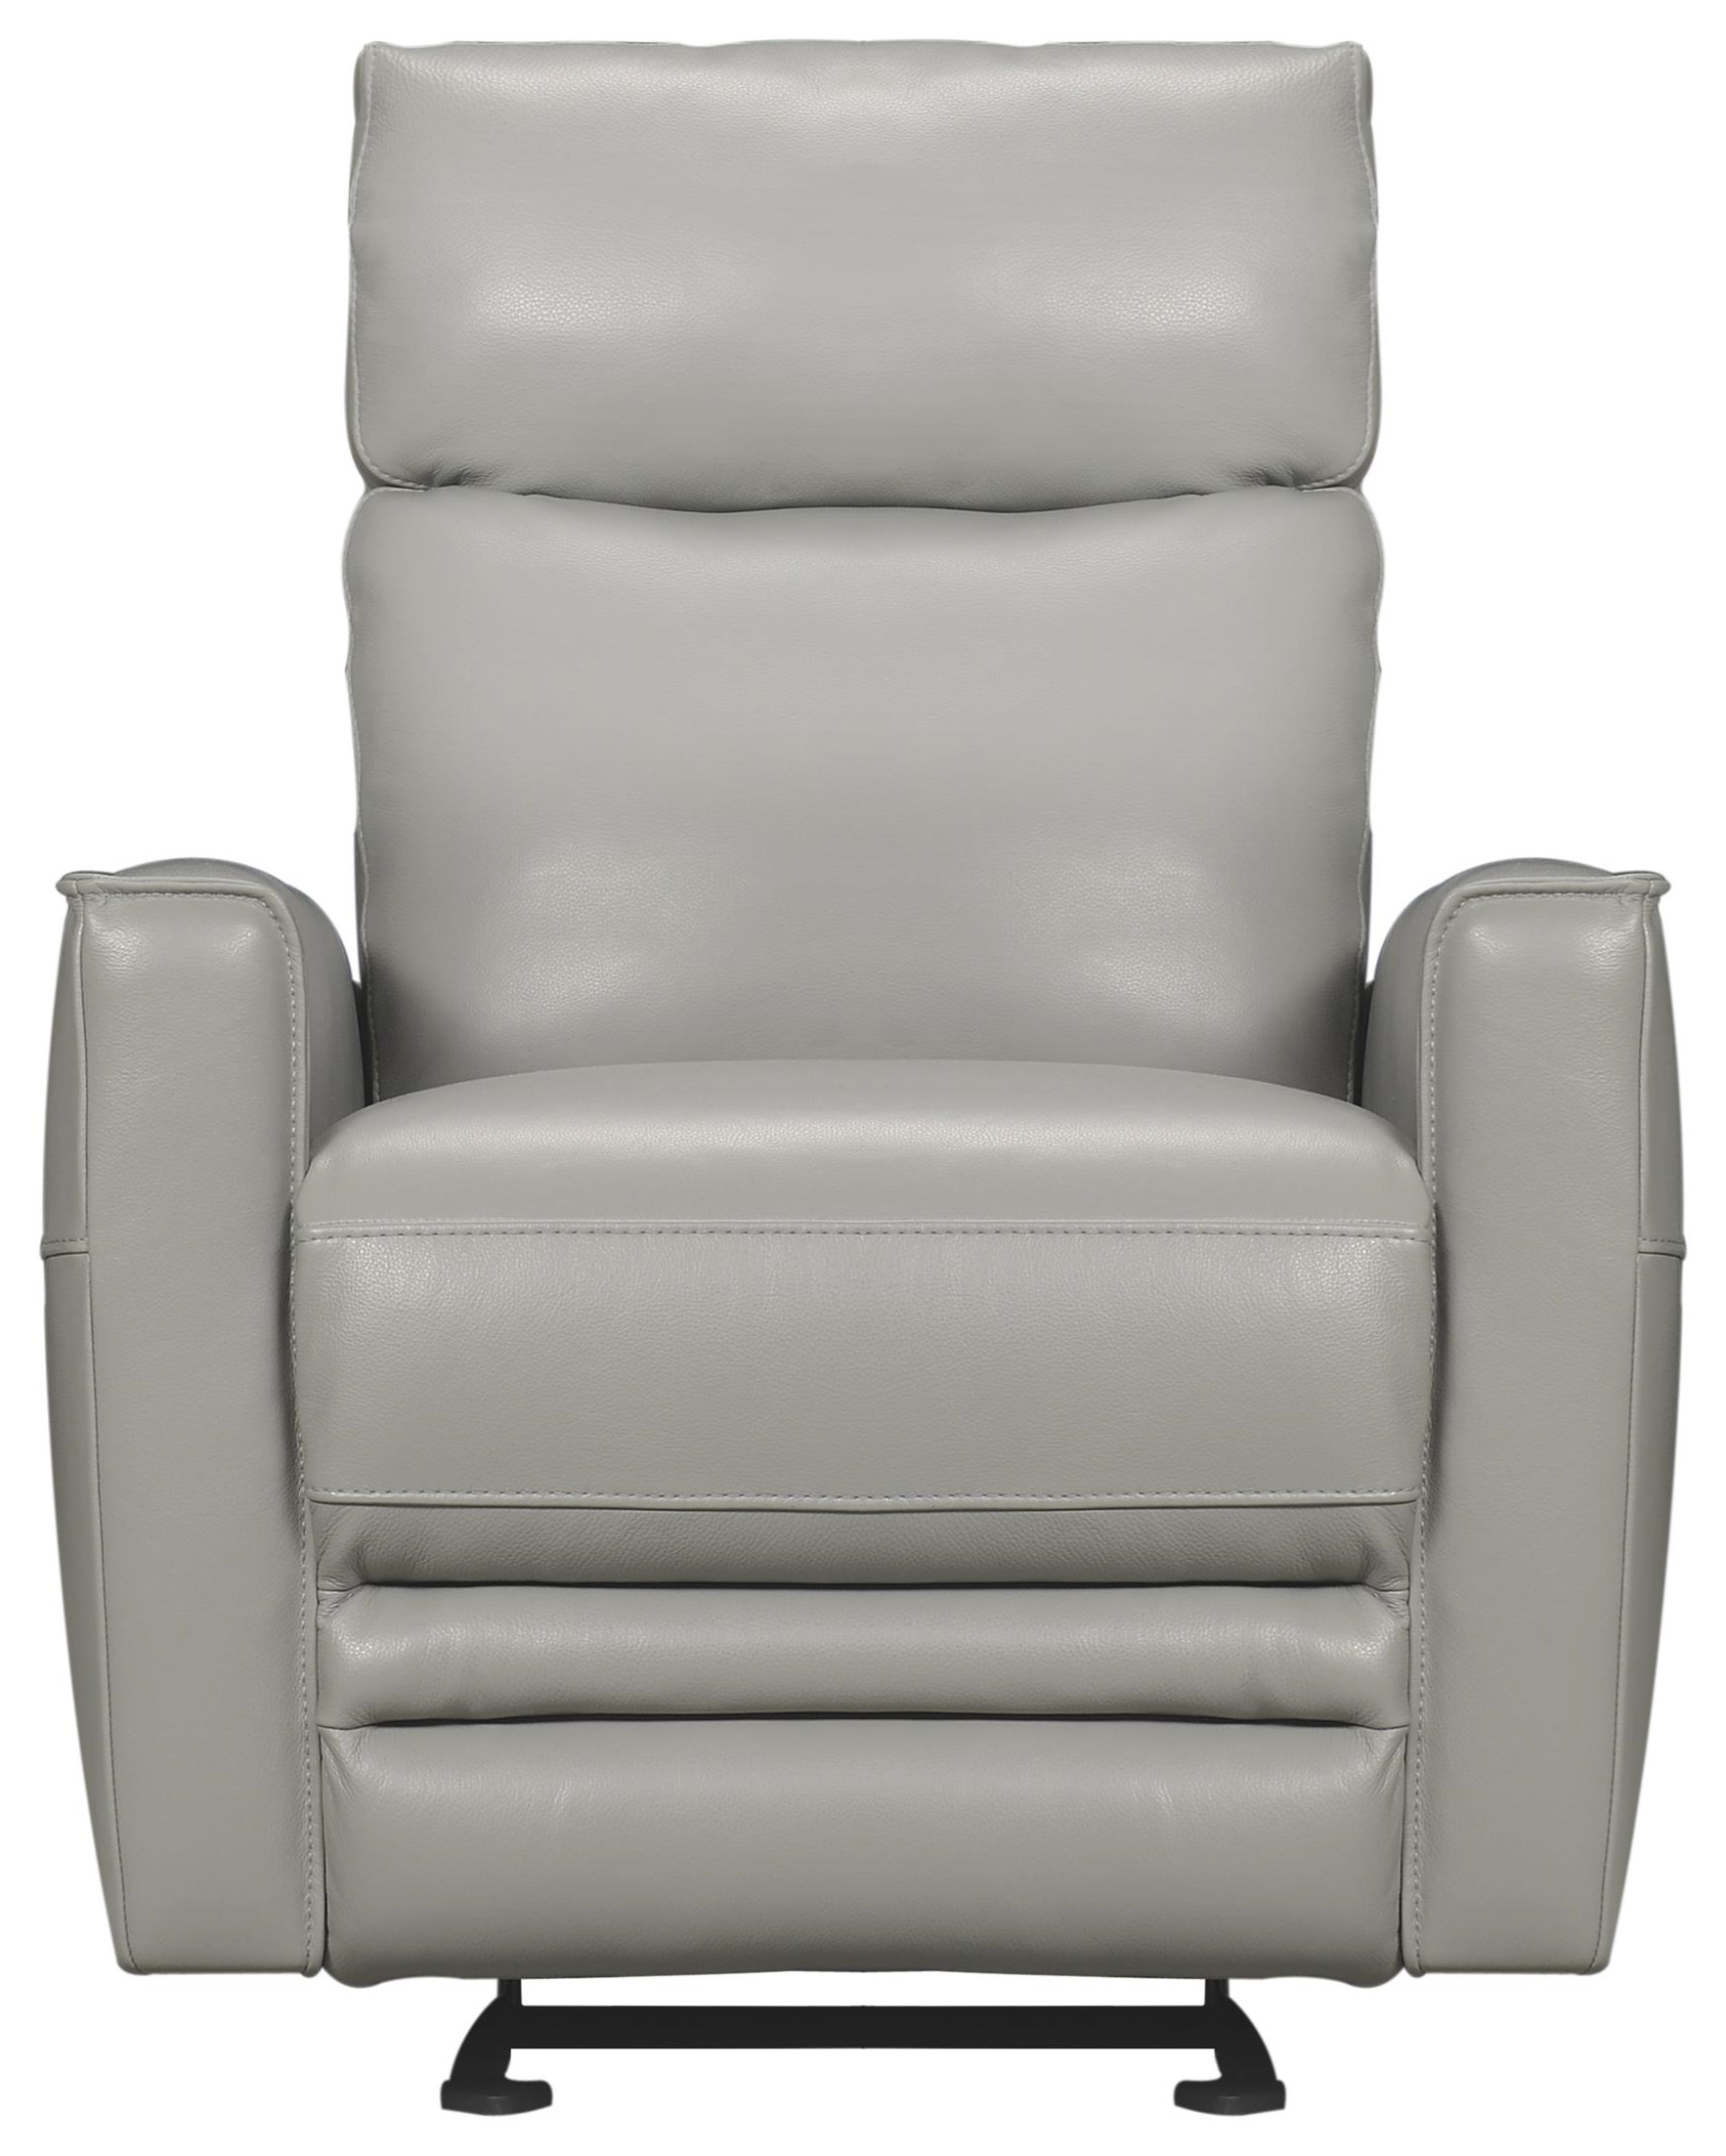 3668 RECLINER CHAIR by Violino at Stoney Creek Furniture